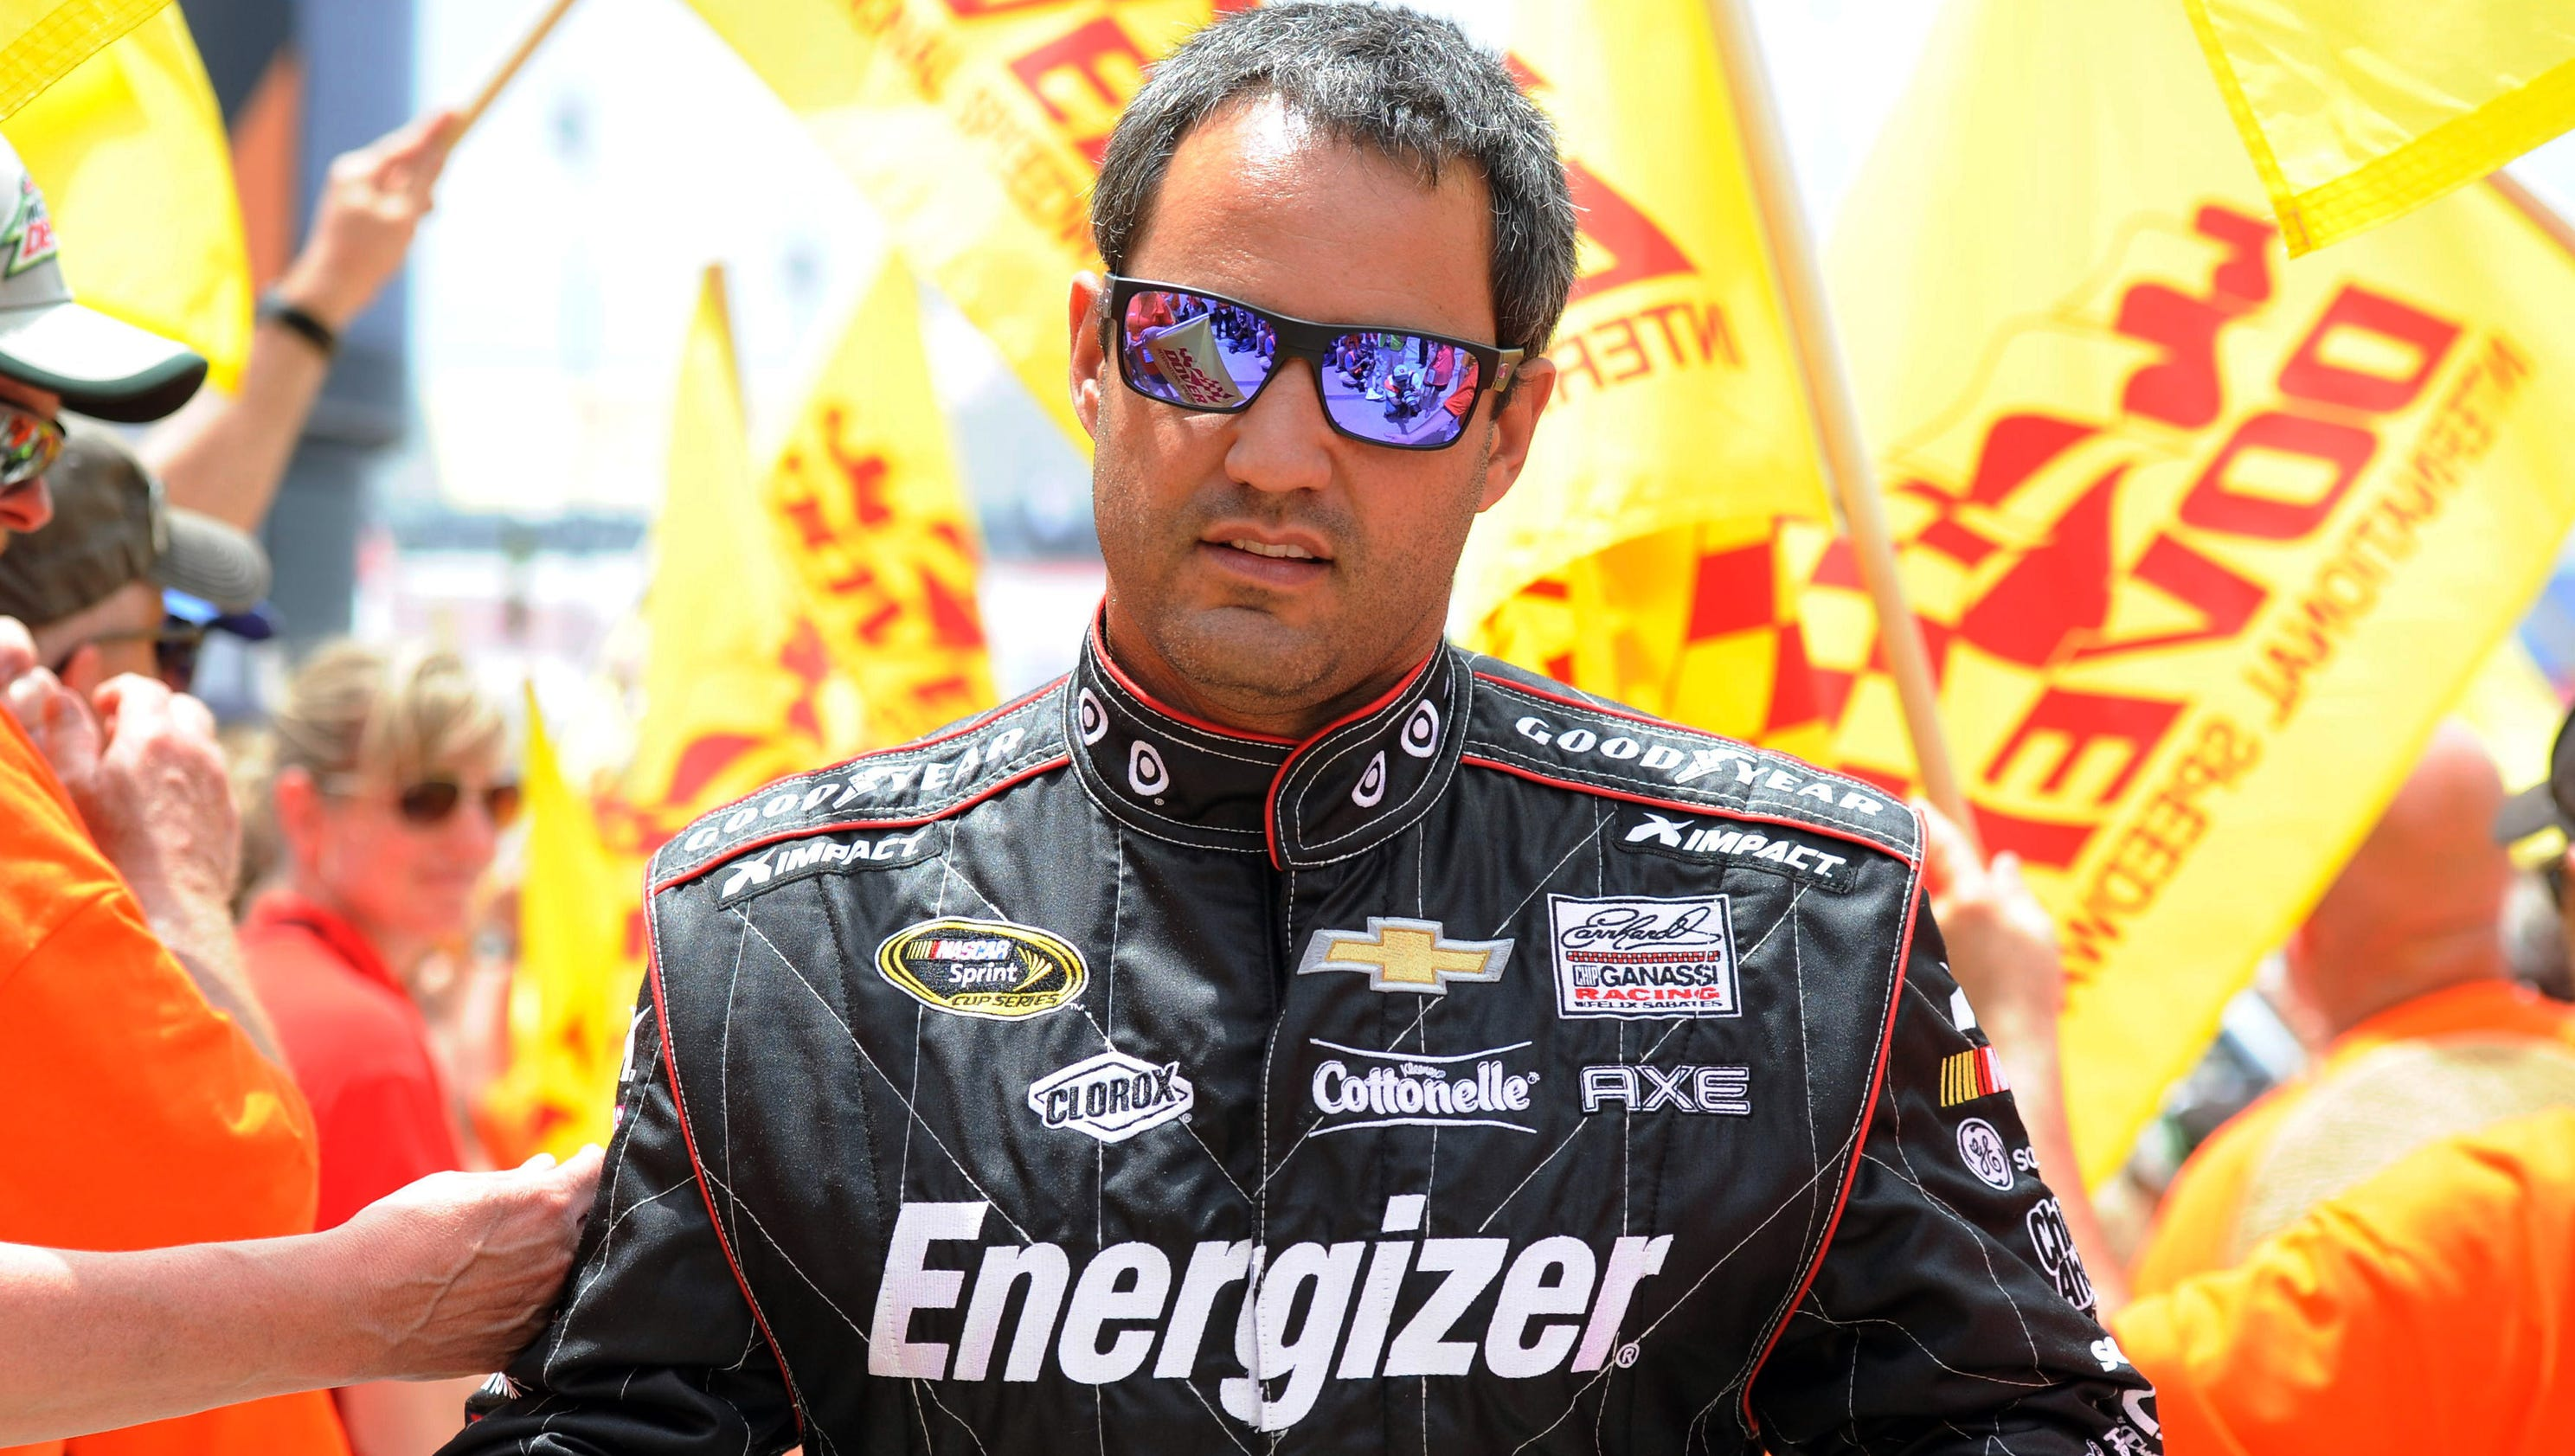 juan pablo montoya returning to indycar racing